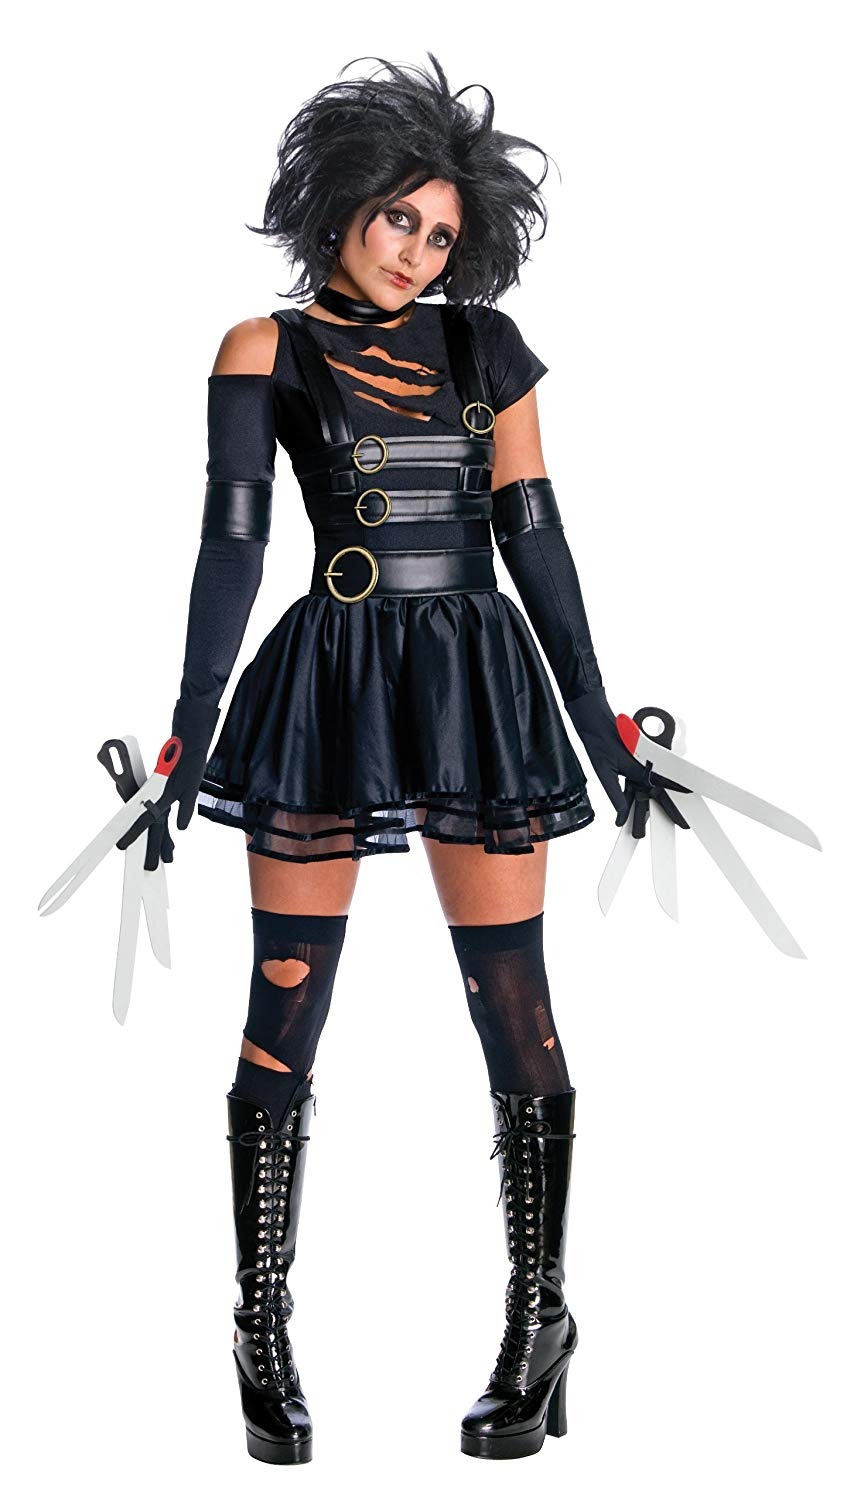 Secret Wishes Edward Scissorhands Sexy Miss Scissorhands Costume - Halloween Costumes for Women